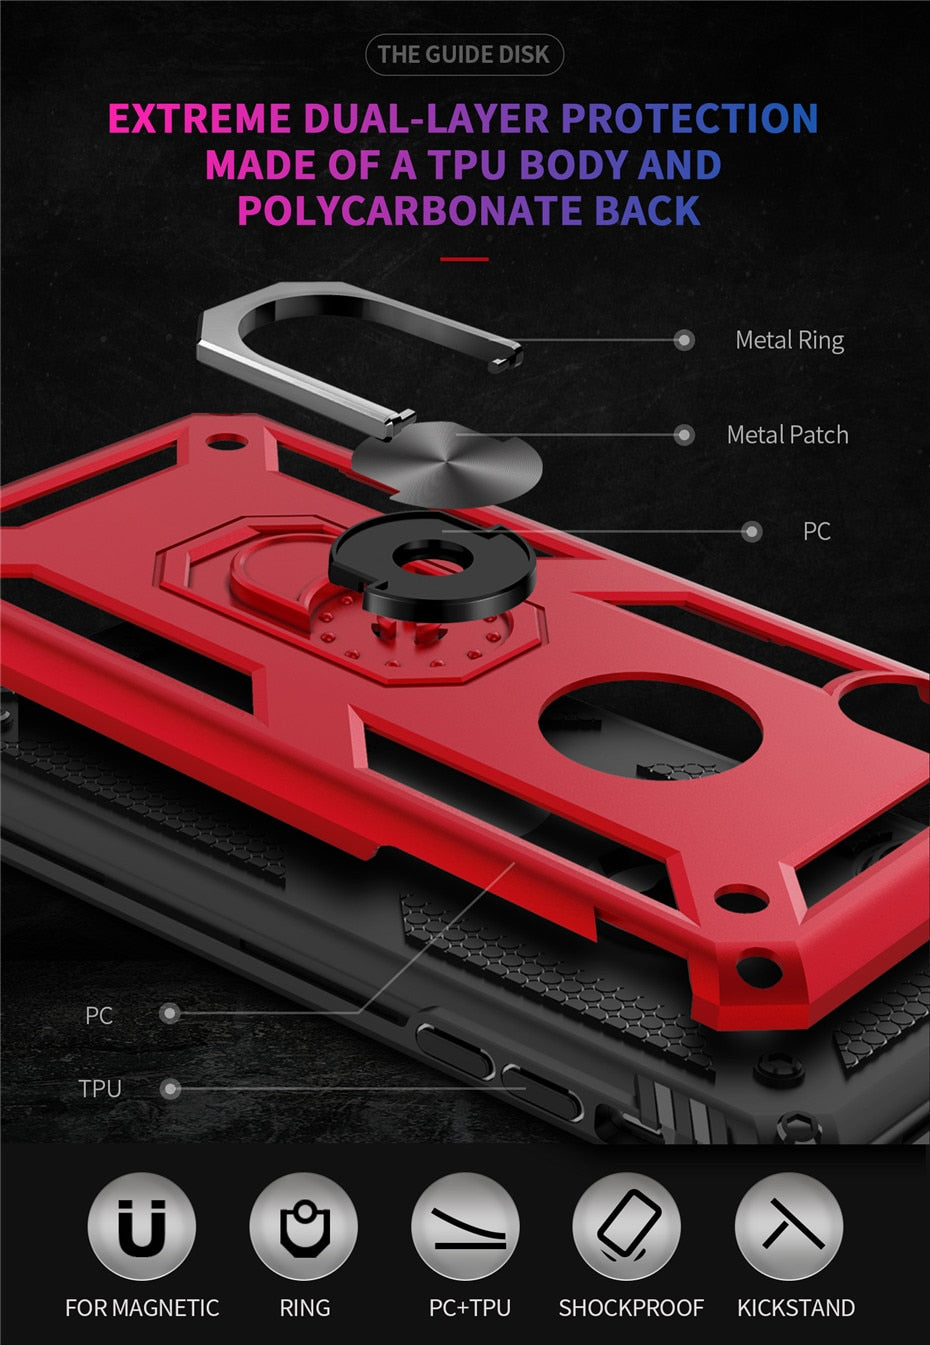 Full Protection Armor Case For iPhone Shockproof Metal Aluminum Case With 360 Degree Rotating Ring Kickstand For iPhone X XS XR XS Max 11 Pro Max SE 2020 12 Pro Max